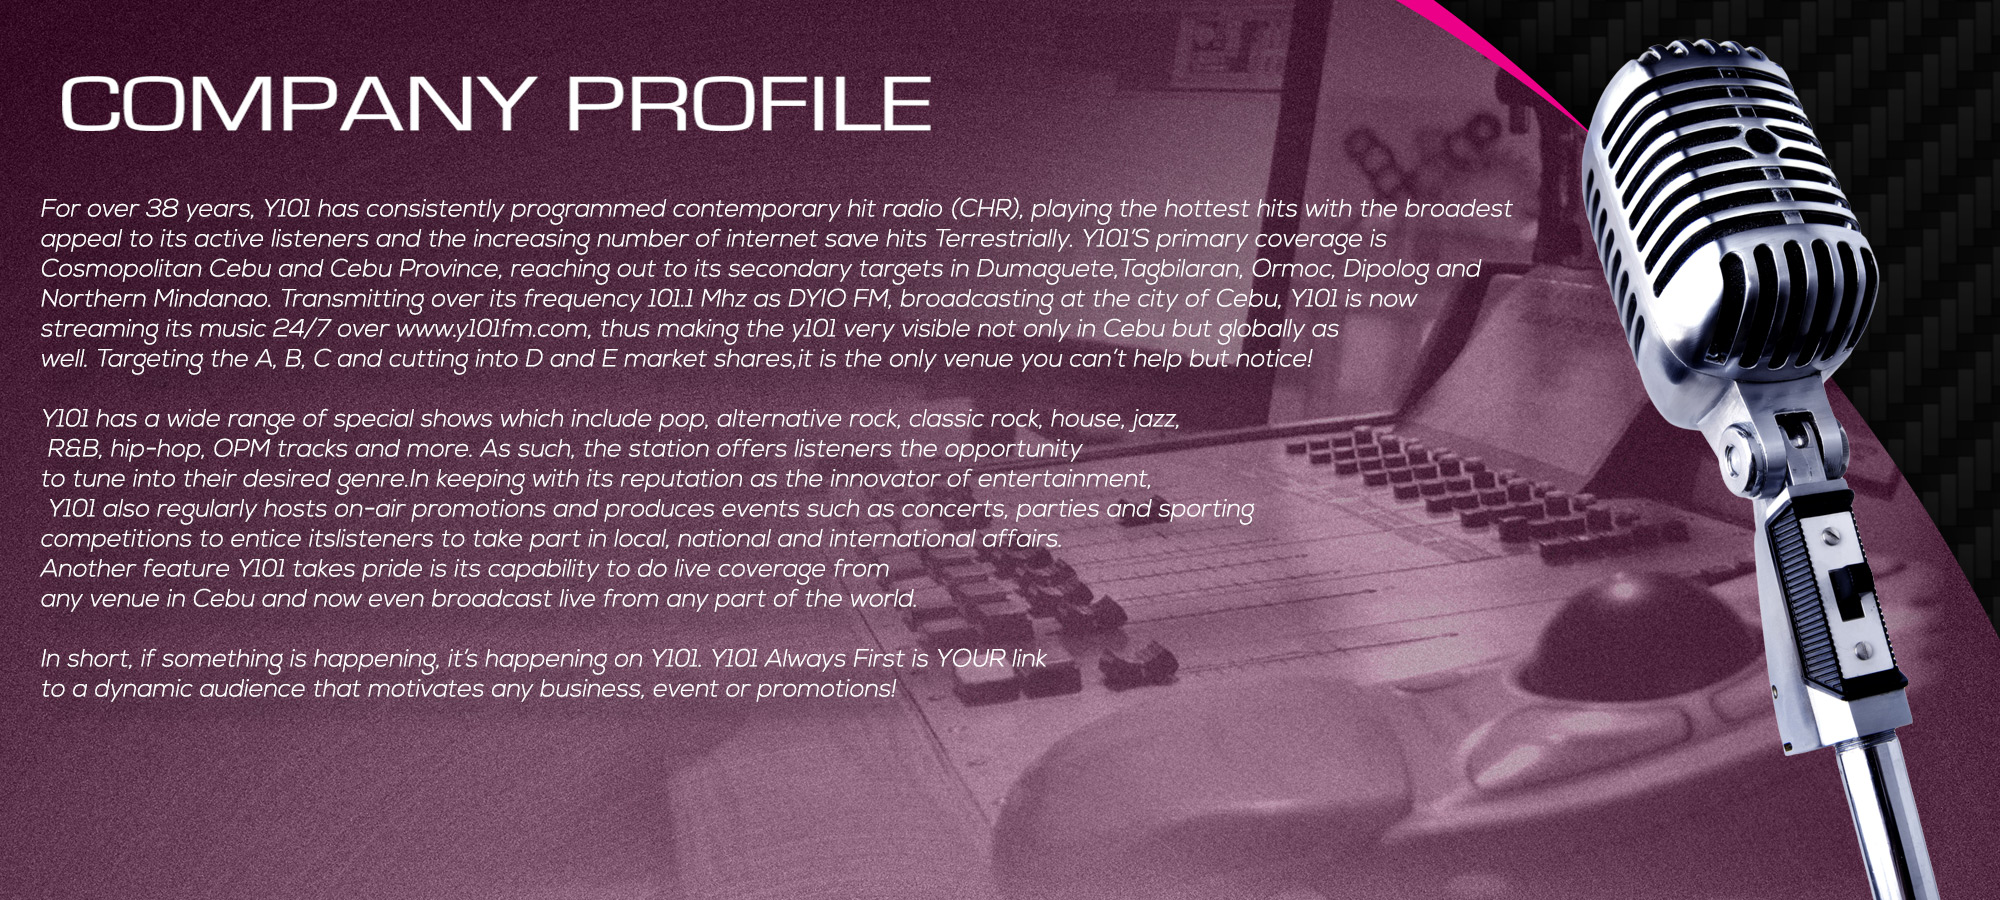 company profile new 1